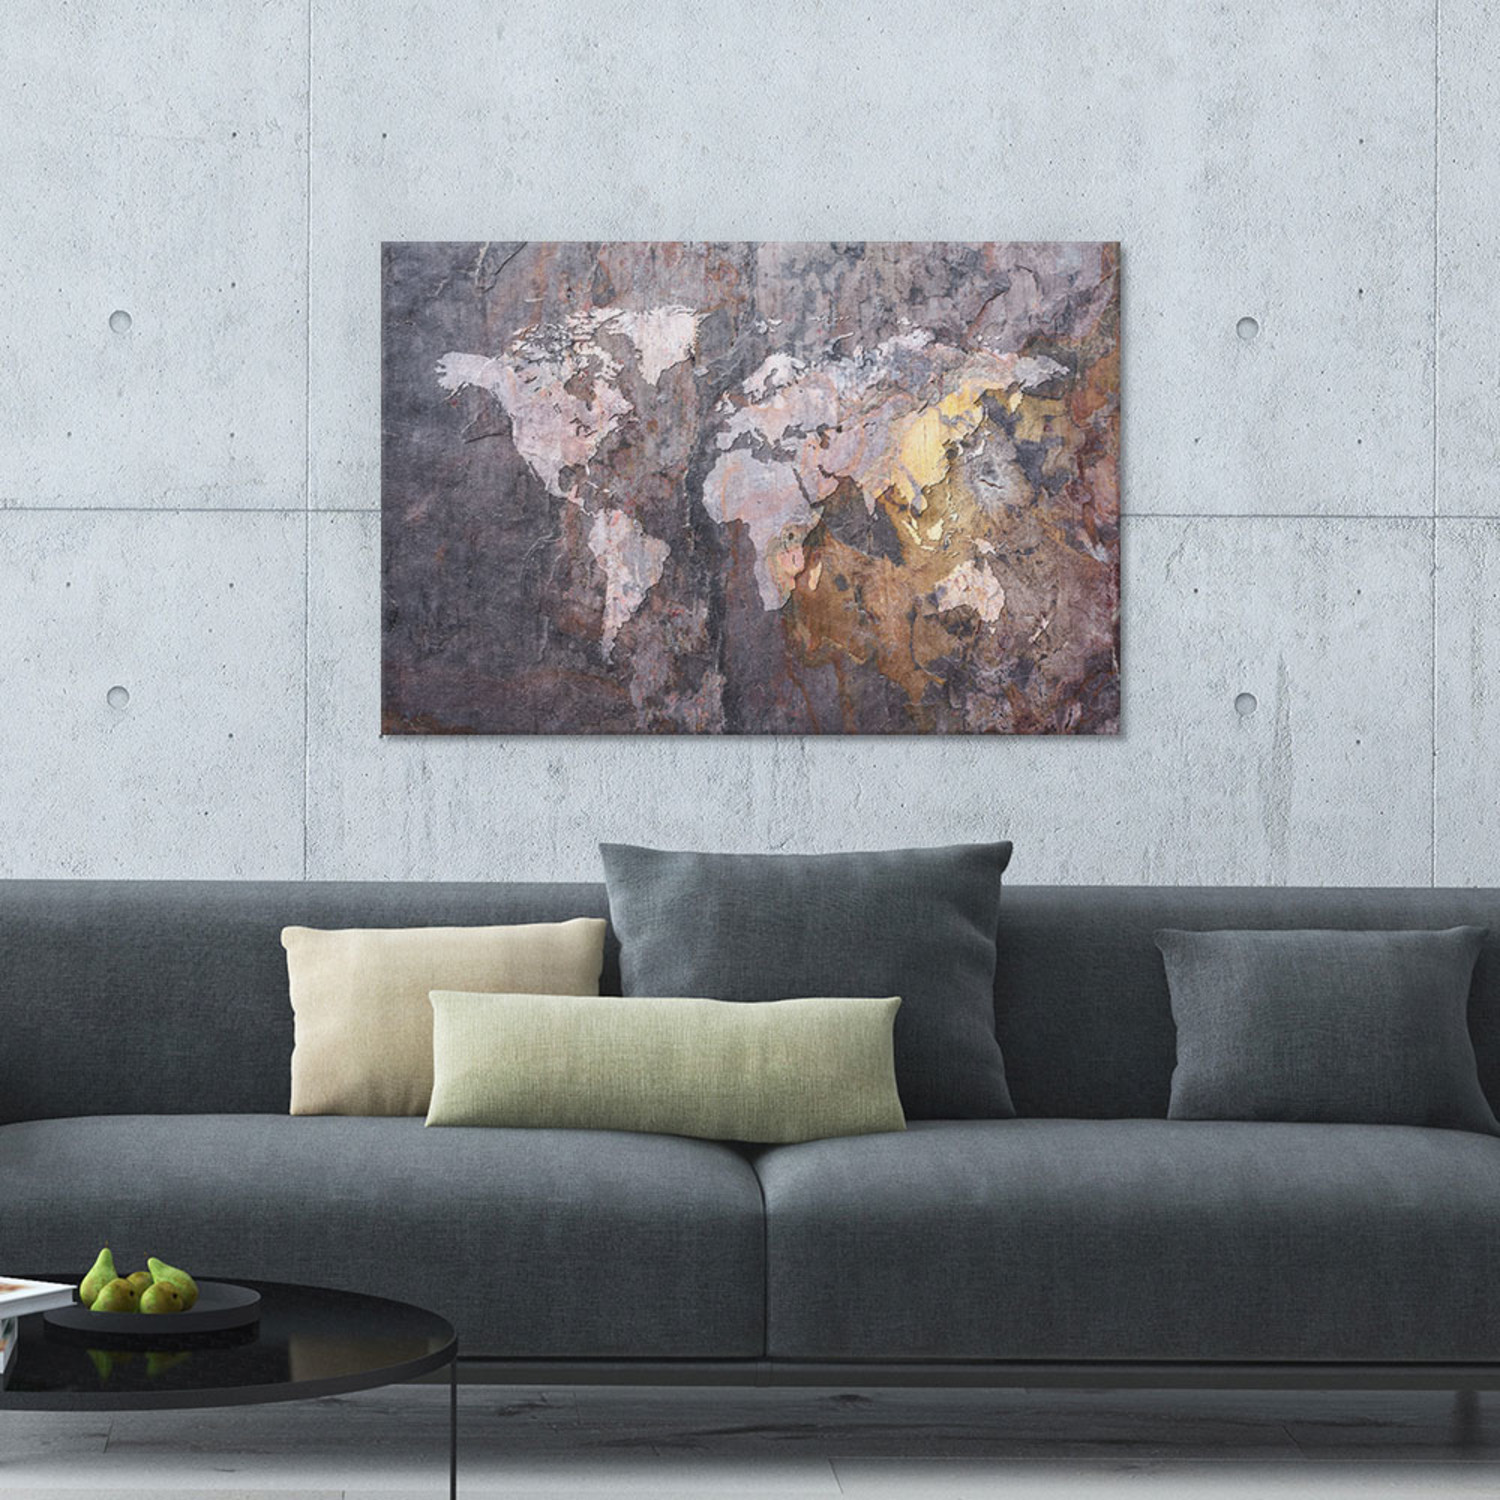 World map on stone background 40w x 26h x 075d vintage world map on stone background 40w x 26h gumiabroncs Gallery